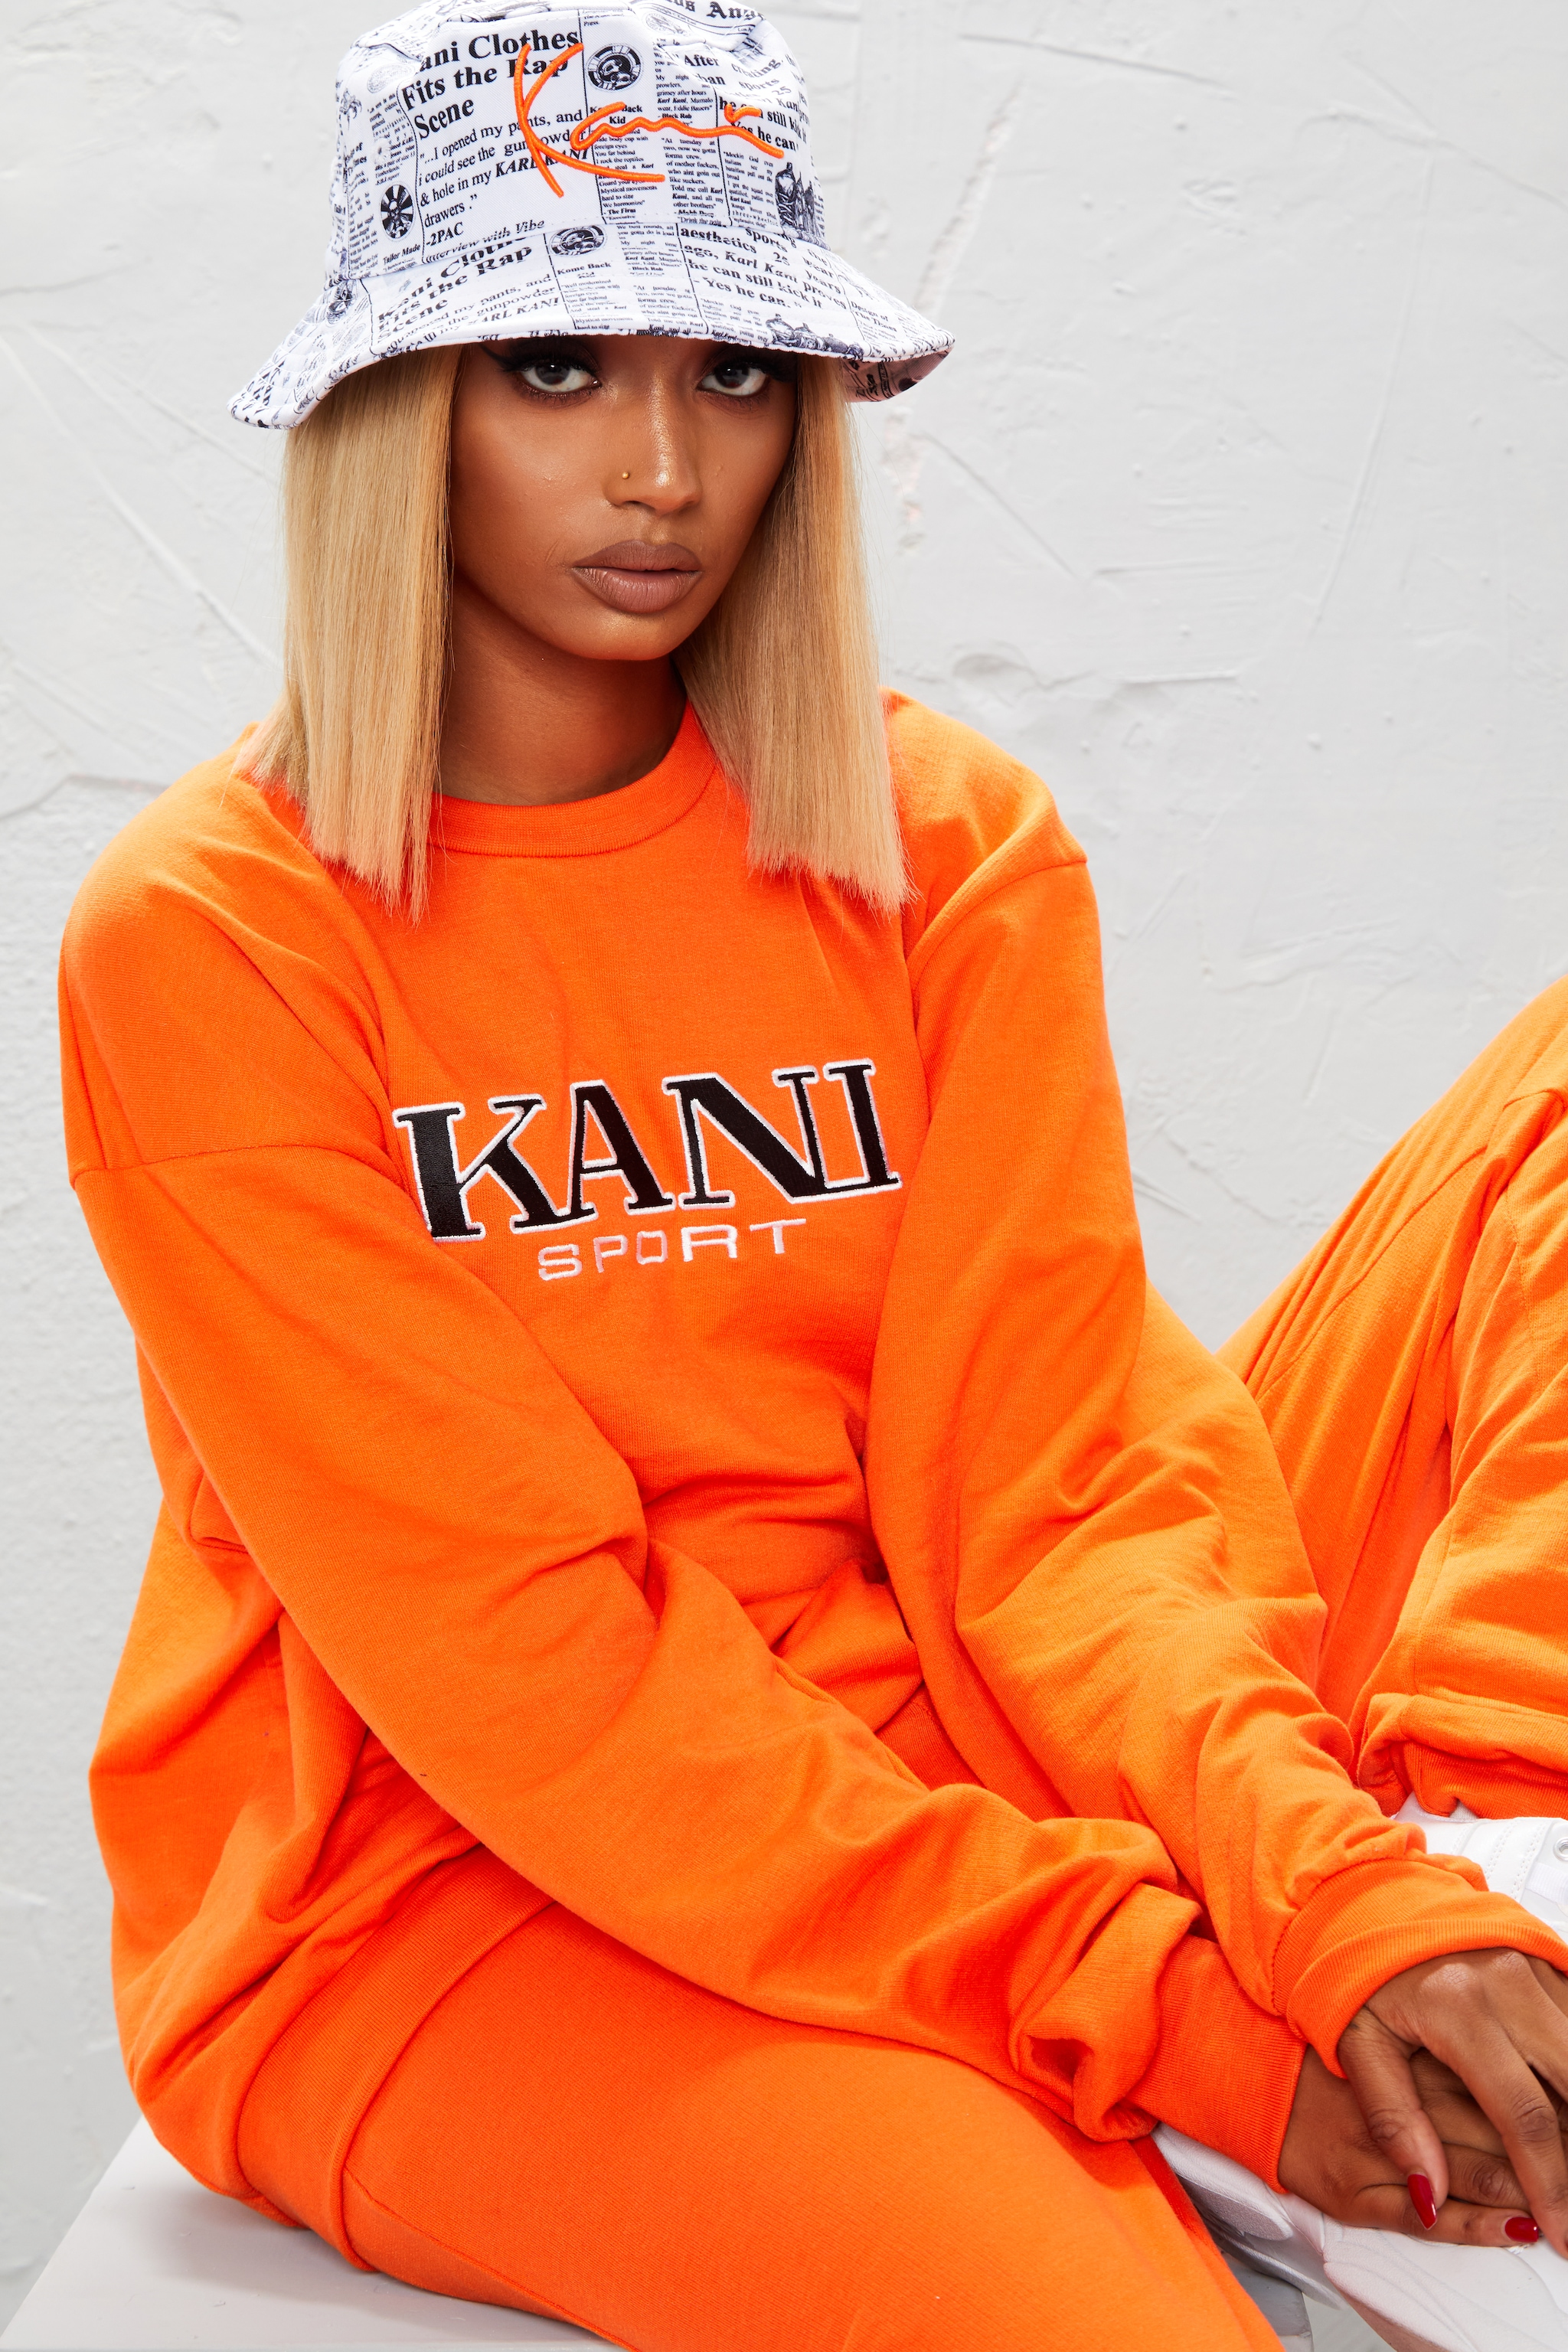 KARL KANI Orange Embroidered Oversized Sweatshirt 5